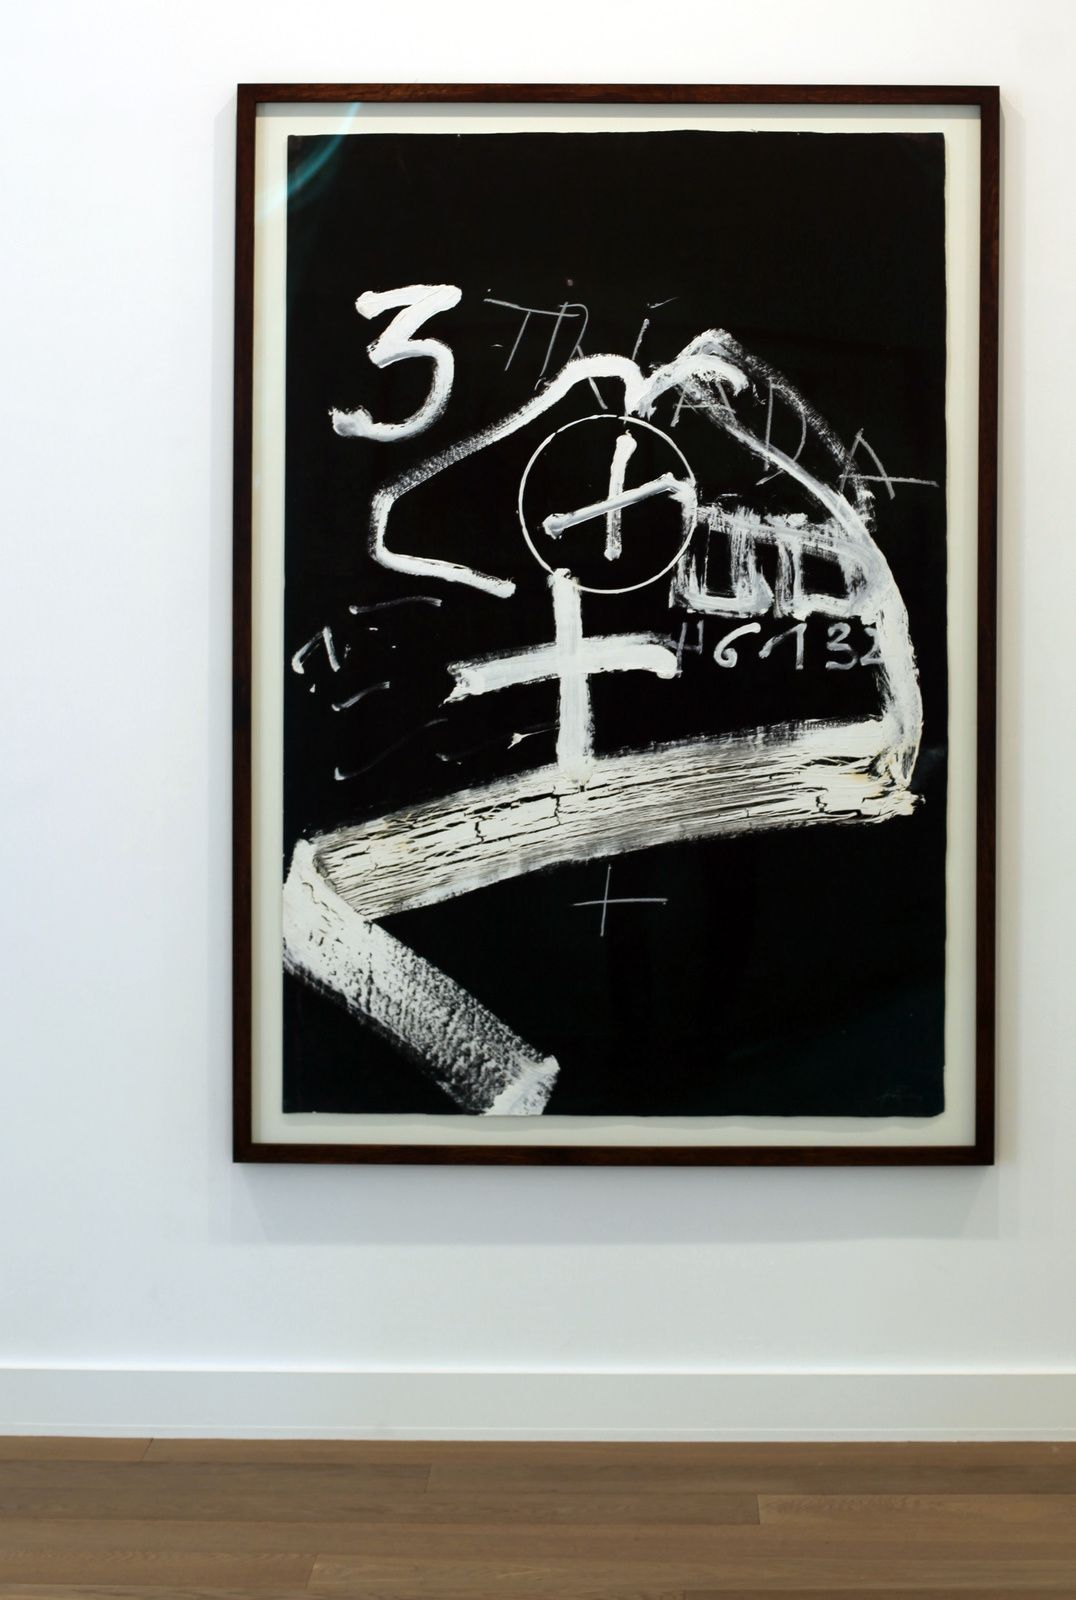 """Signes blancs sobre fons negre"", 1994 d'Antoni TÀPIES - Courtesy Galerie Lelong © Photo Éric Simon"